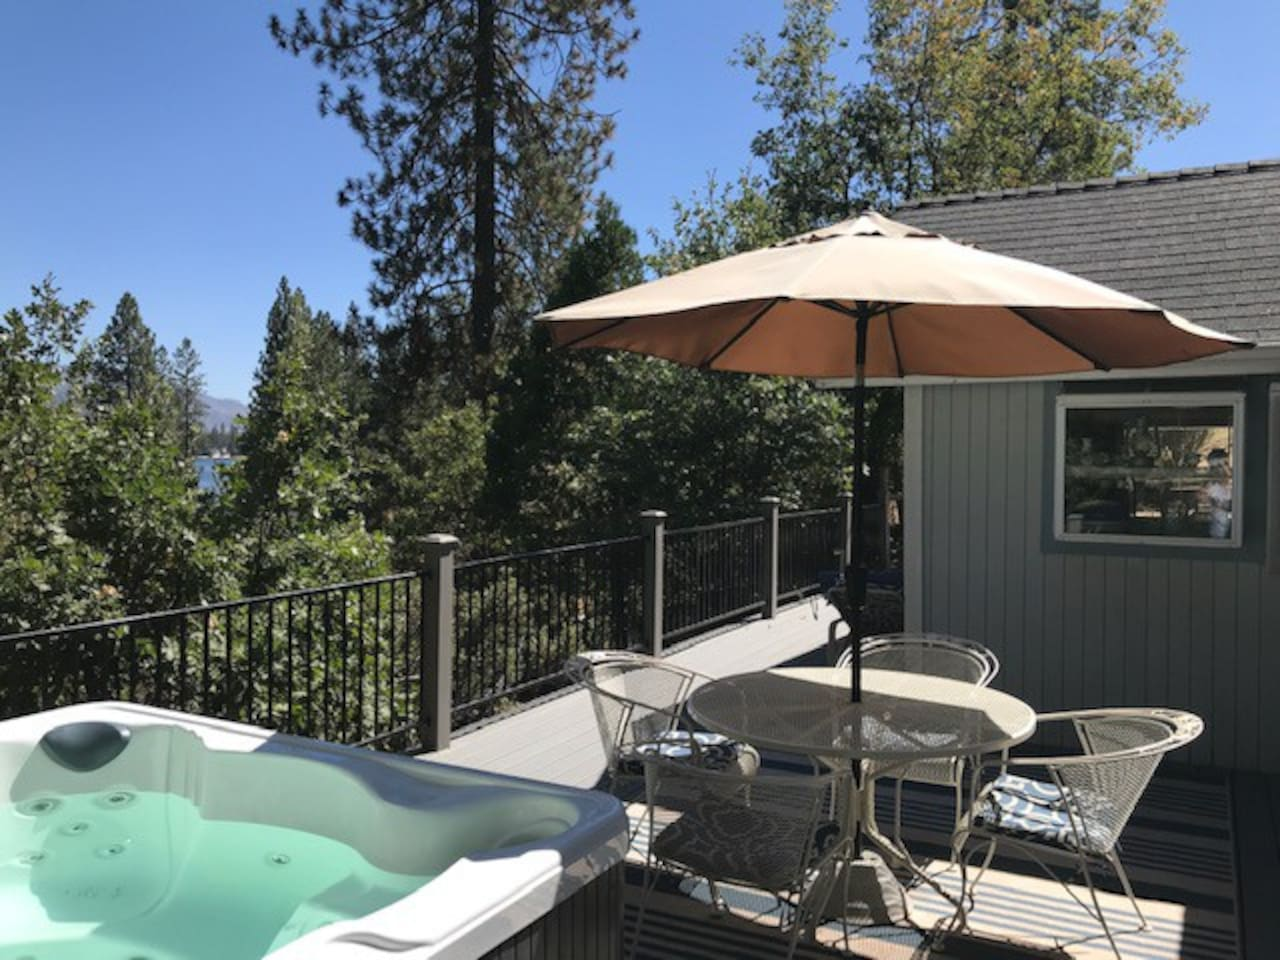 Lake can be viewed from the deck and hot tub. It's perfect for stargazing after a long day at Yosemite.